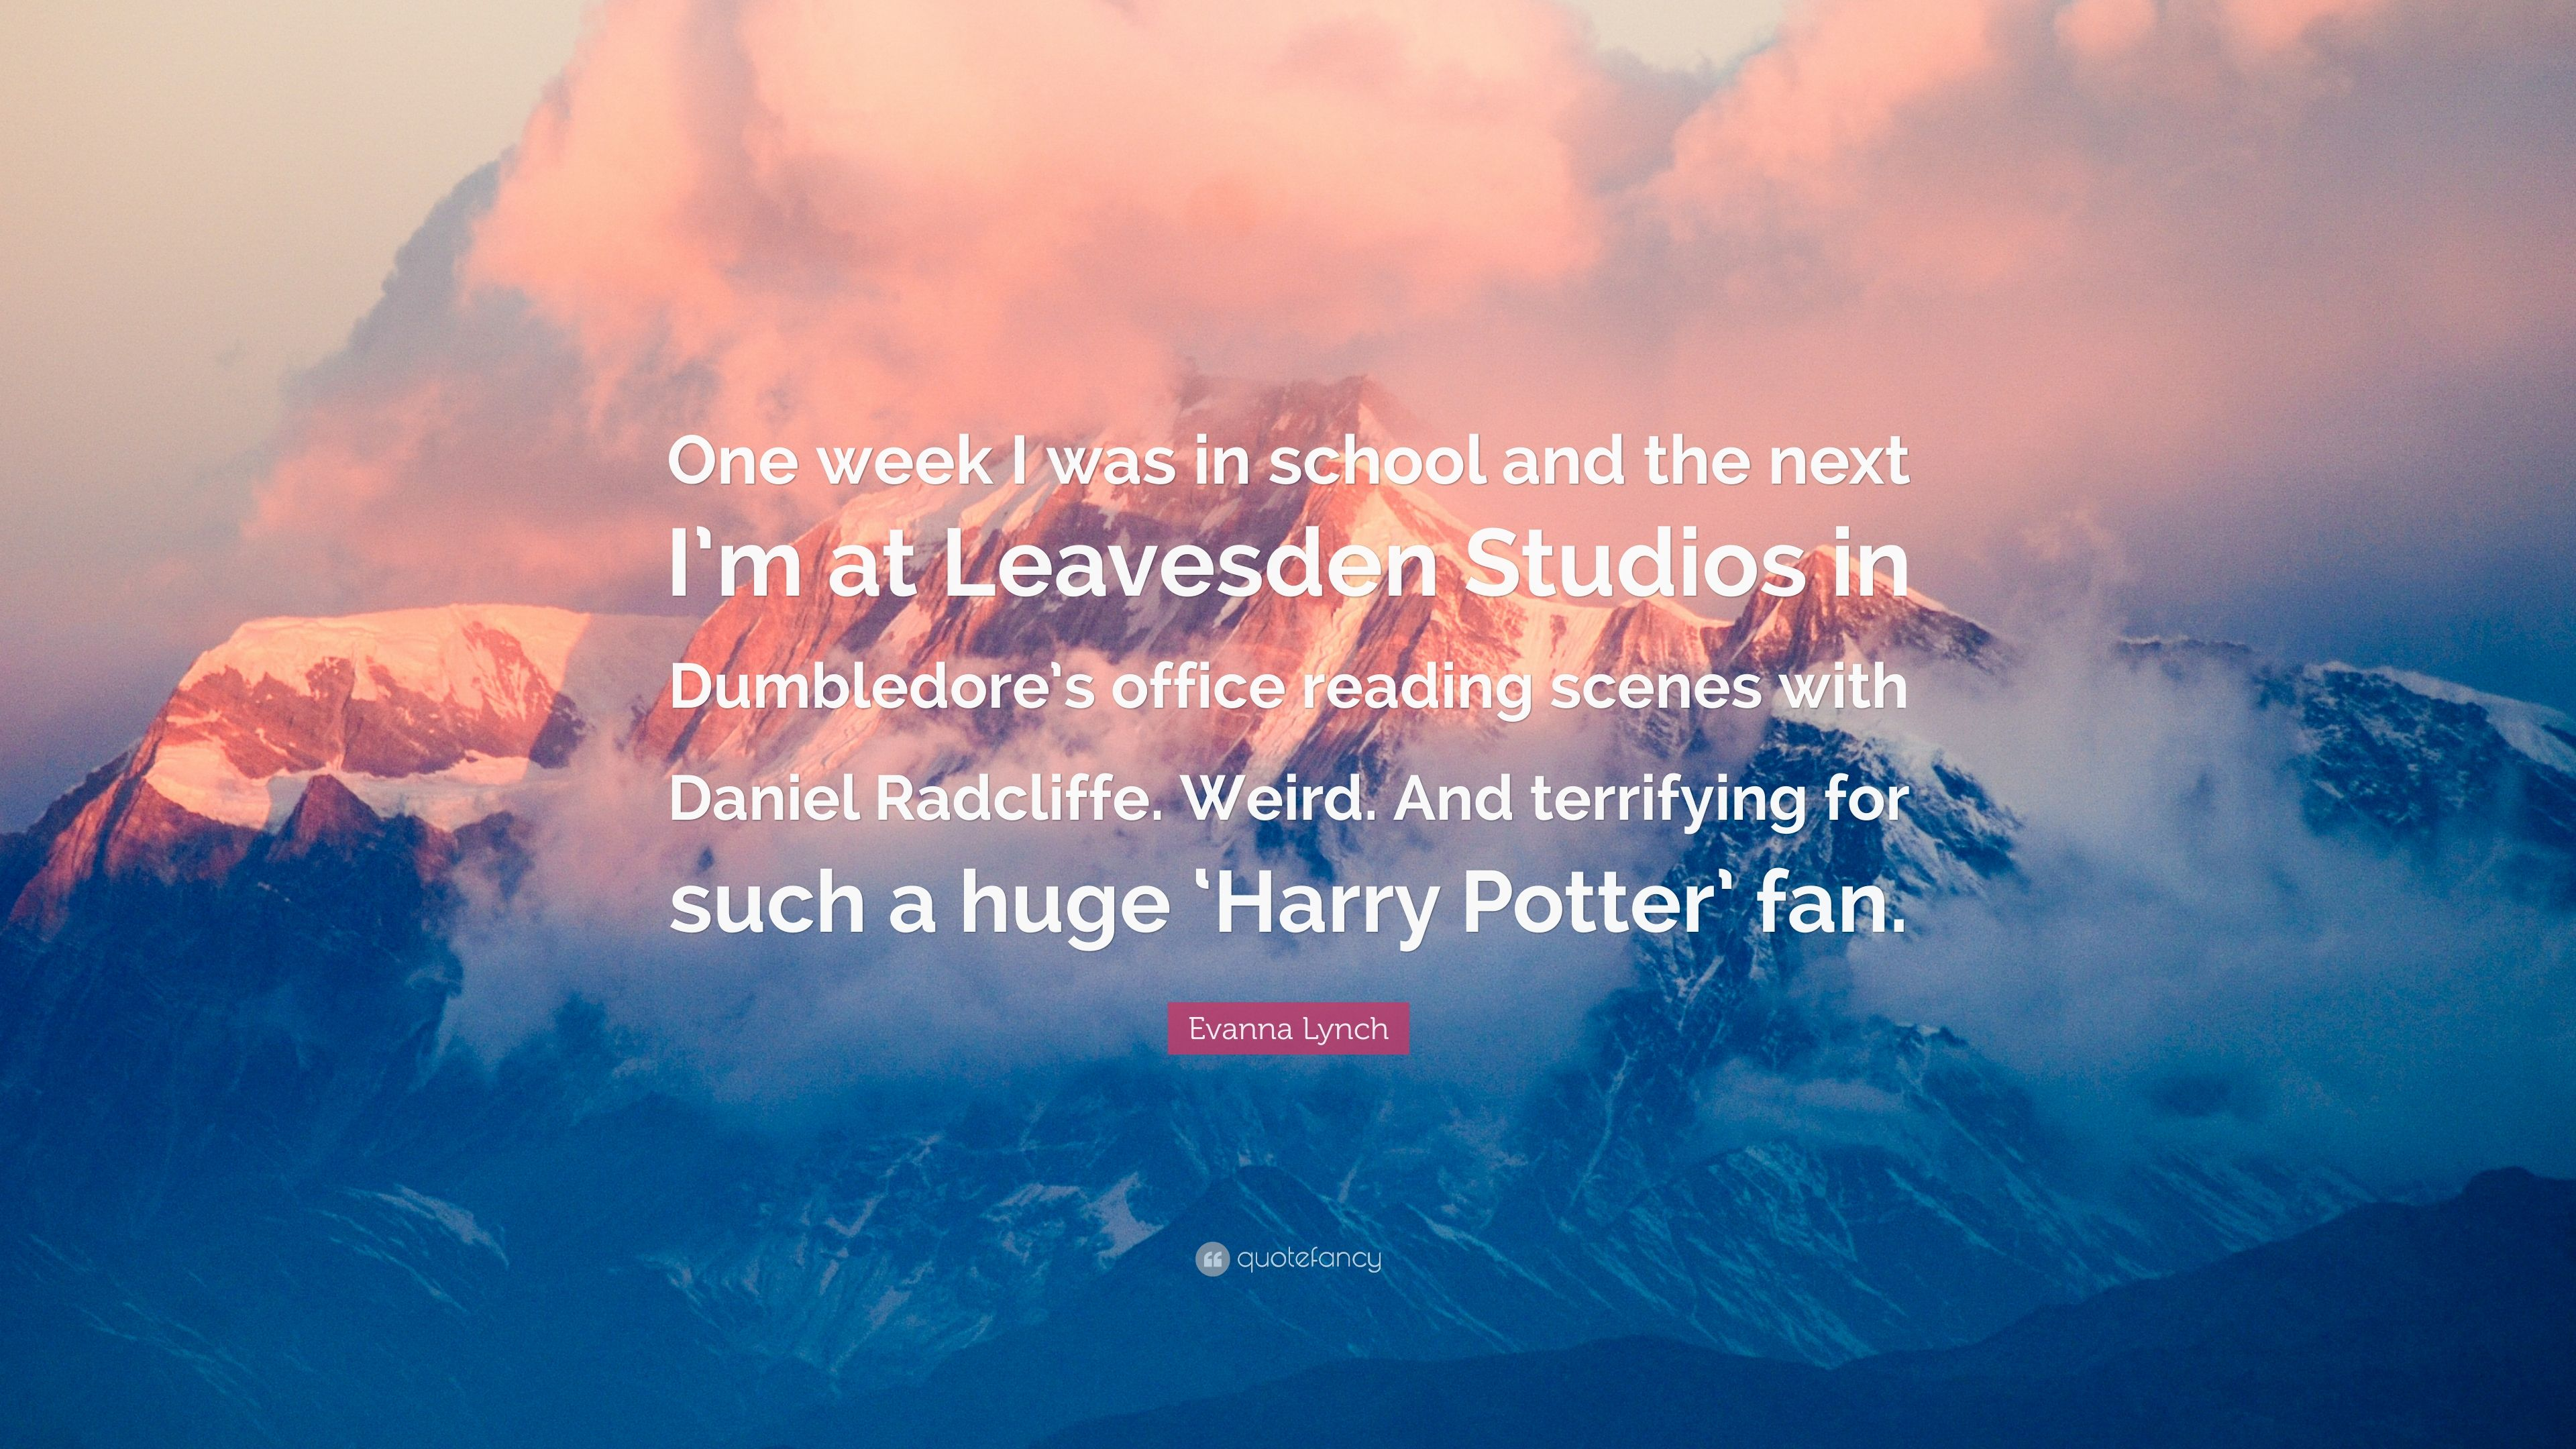 Good Wallpaper Harry Potter Pink - 4566900-Evanna-Lynch-Quote-One-week-I-was-in-school-and-the-next-I-m-at  Image_711320.jpg